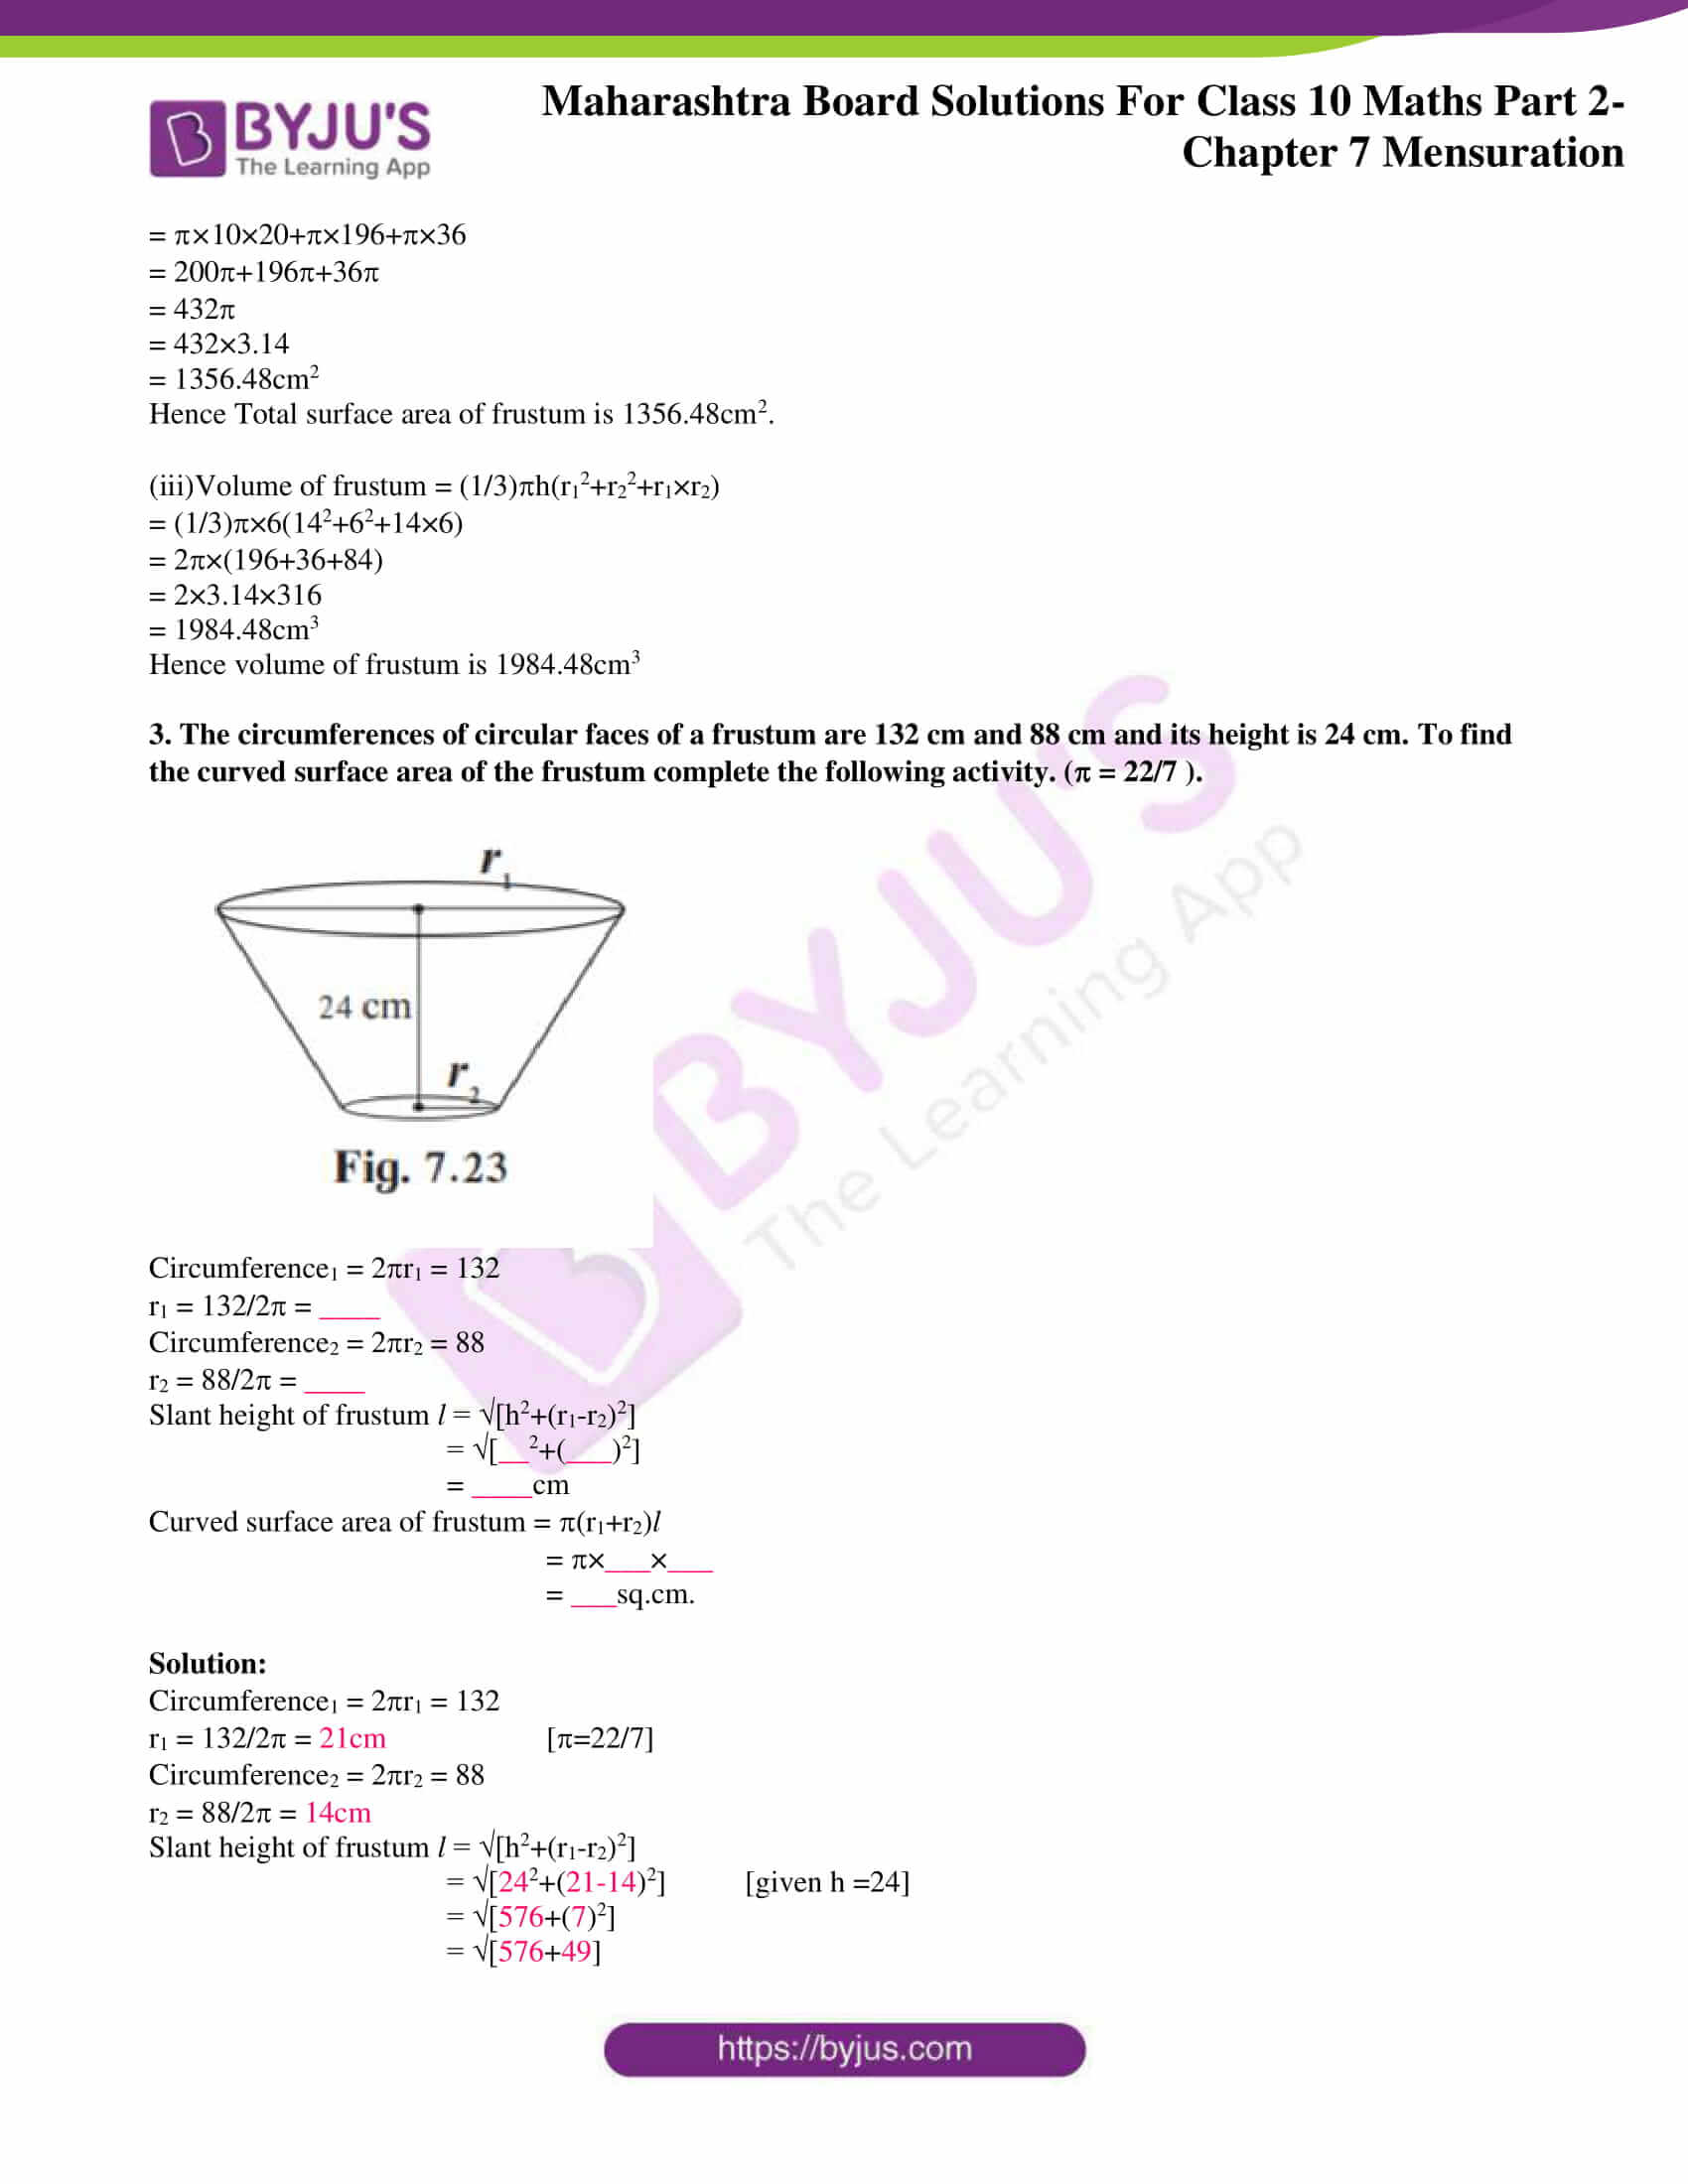 msbshse sol class 10 maths part 2 chapter 7 09